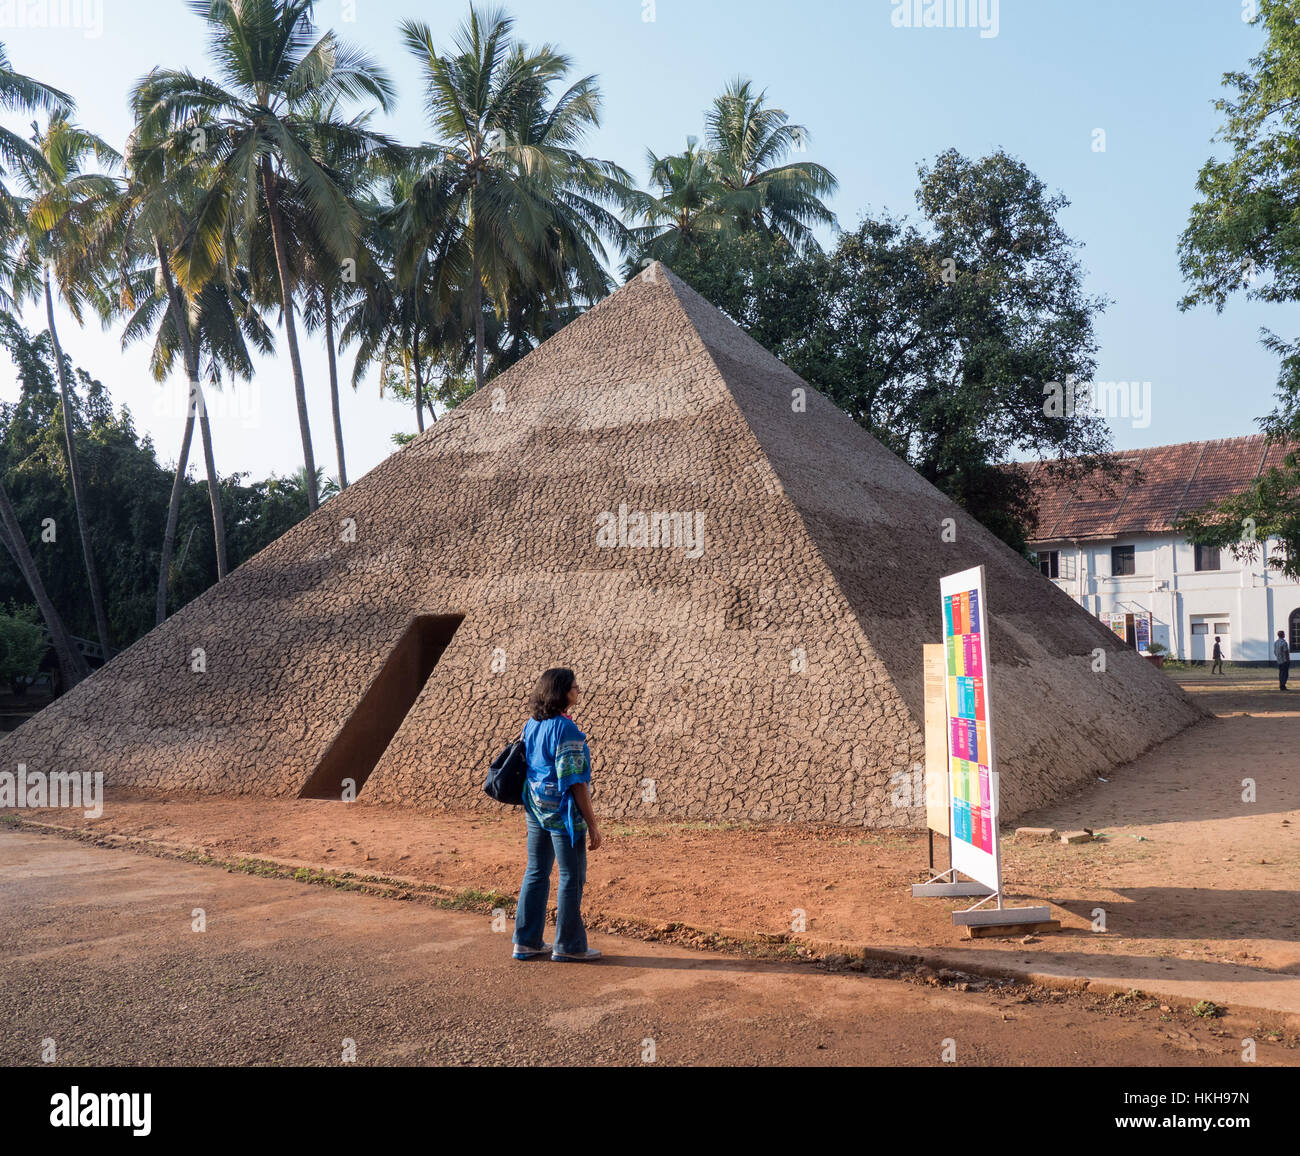 The Pyramid of Exiled Poets by Ales Steger at Kochi-Muziris Biennale in India Stock Photo